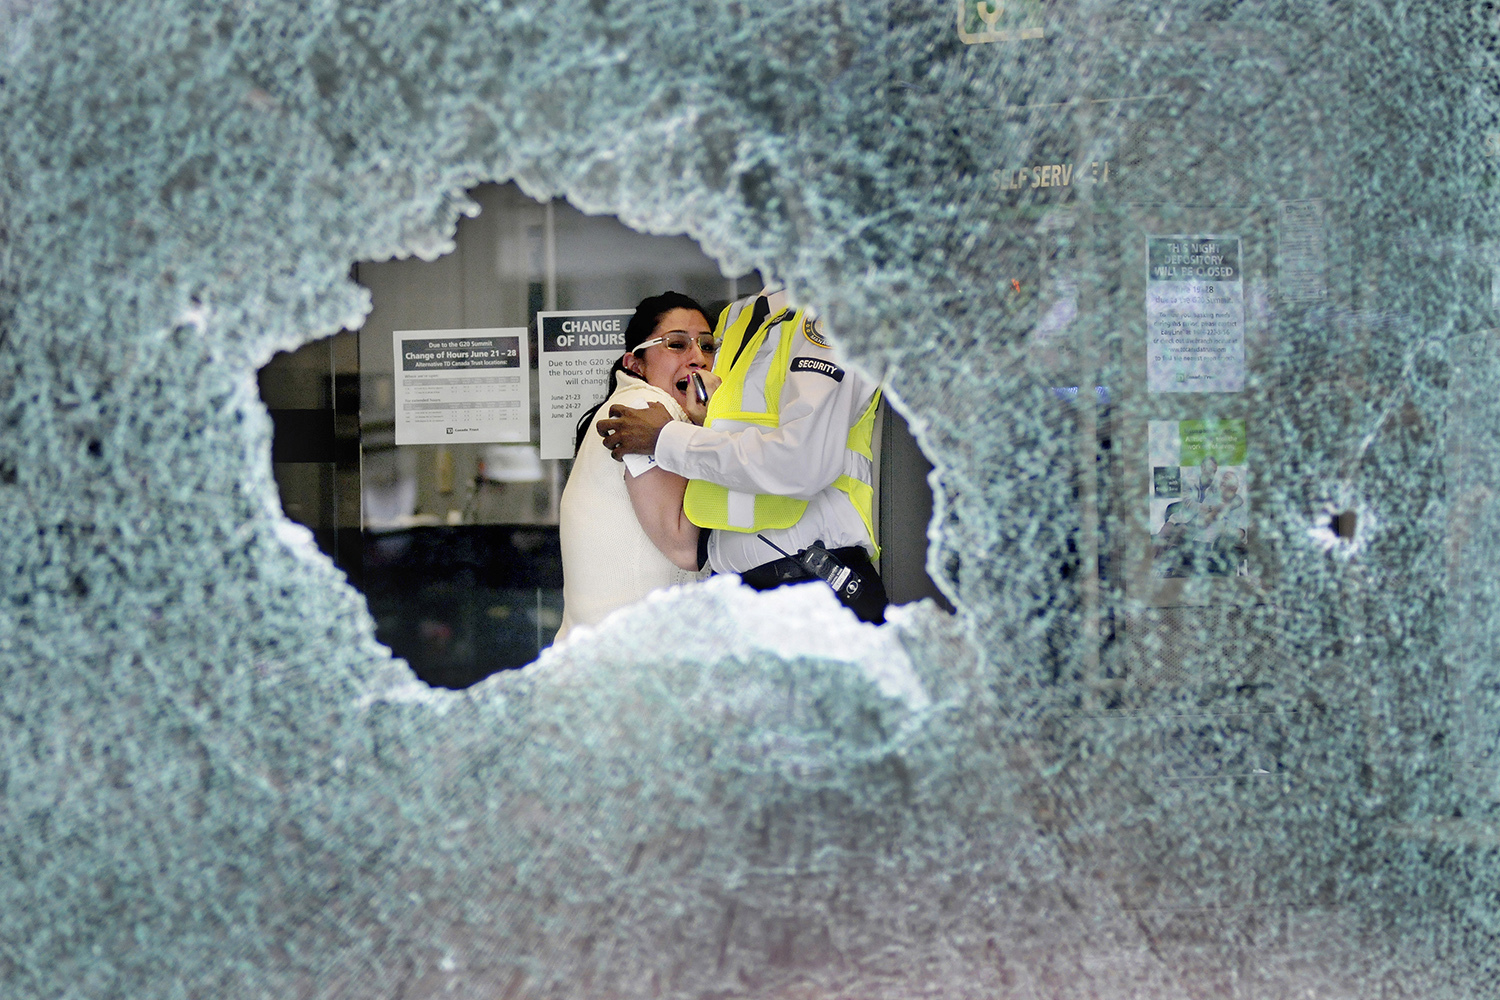 A woman screams as the window of a bank is smashed by anti-G20 protesters on the corner of Queen and Bay, in Toronto, June 26, 2010. The summit took place in a highly protected area but outside store and bank windows were smashed by anti-G20 protesters.